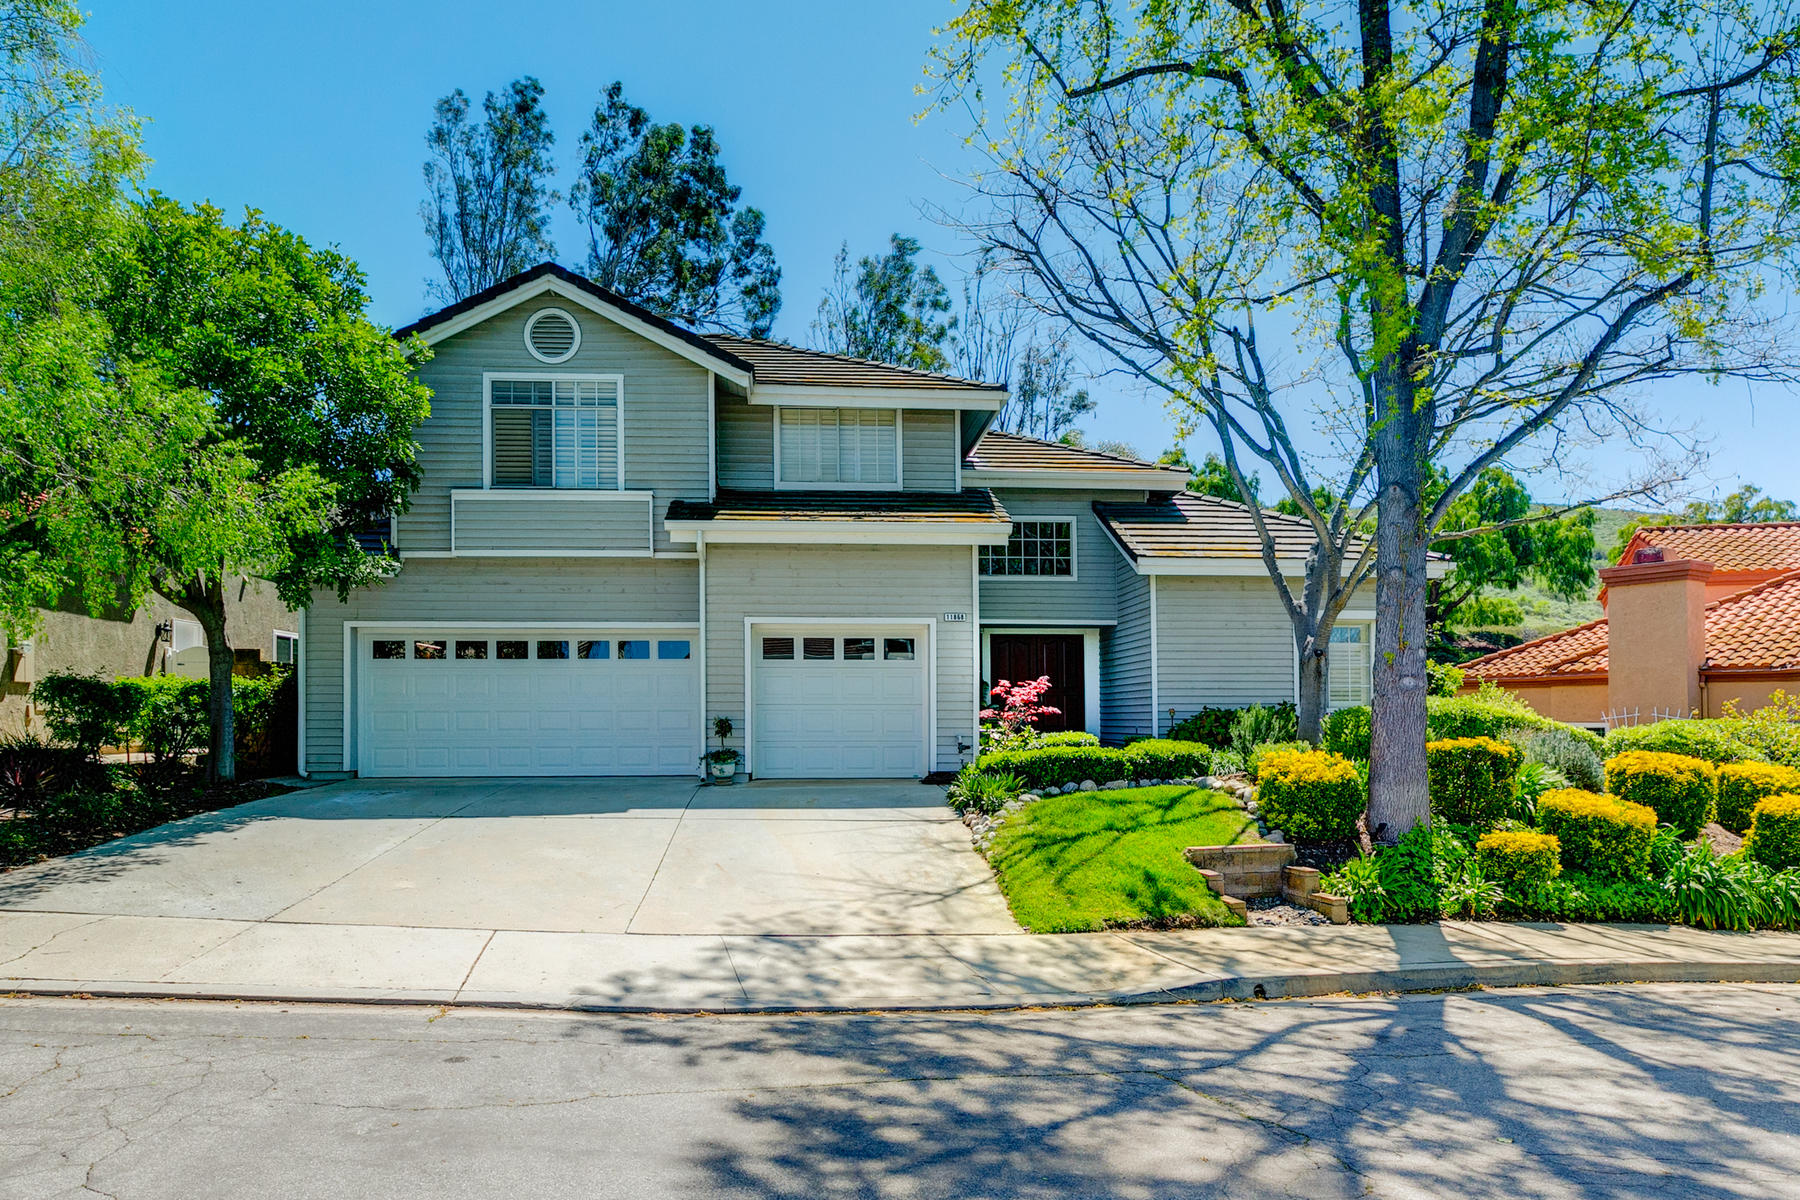 Single Family Homes for Active at 11868 Silver Crest Street Moorpark, California 93021 United States